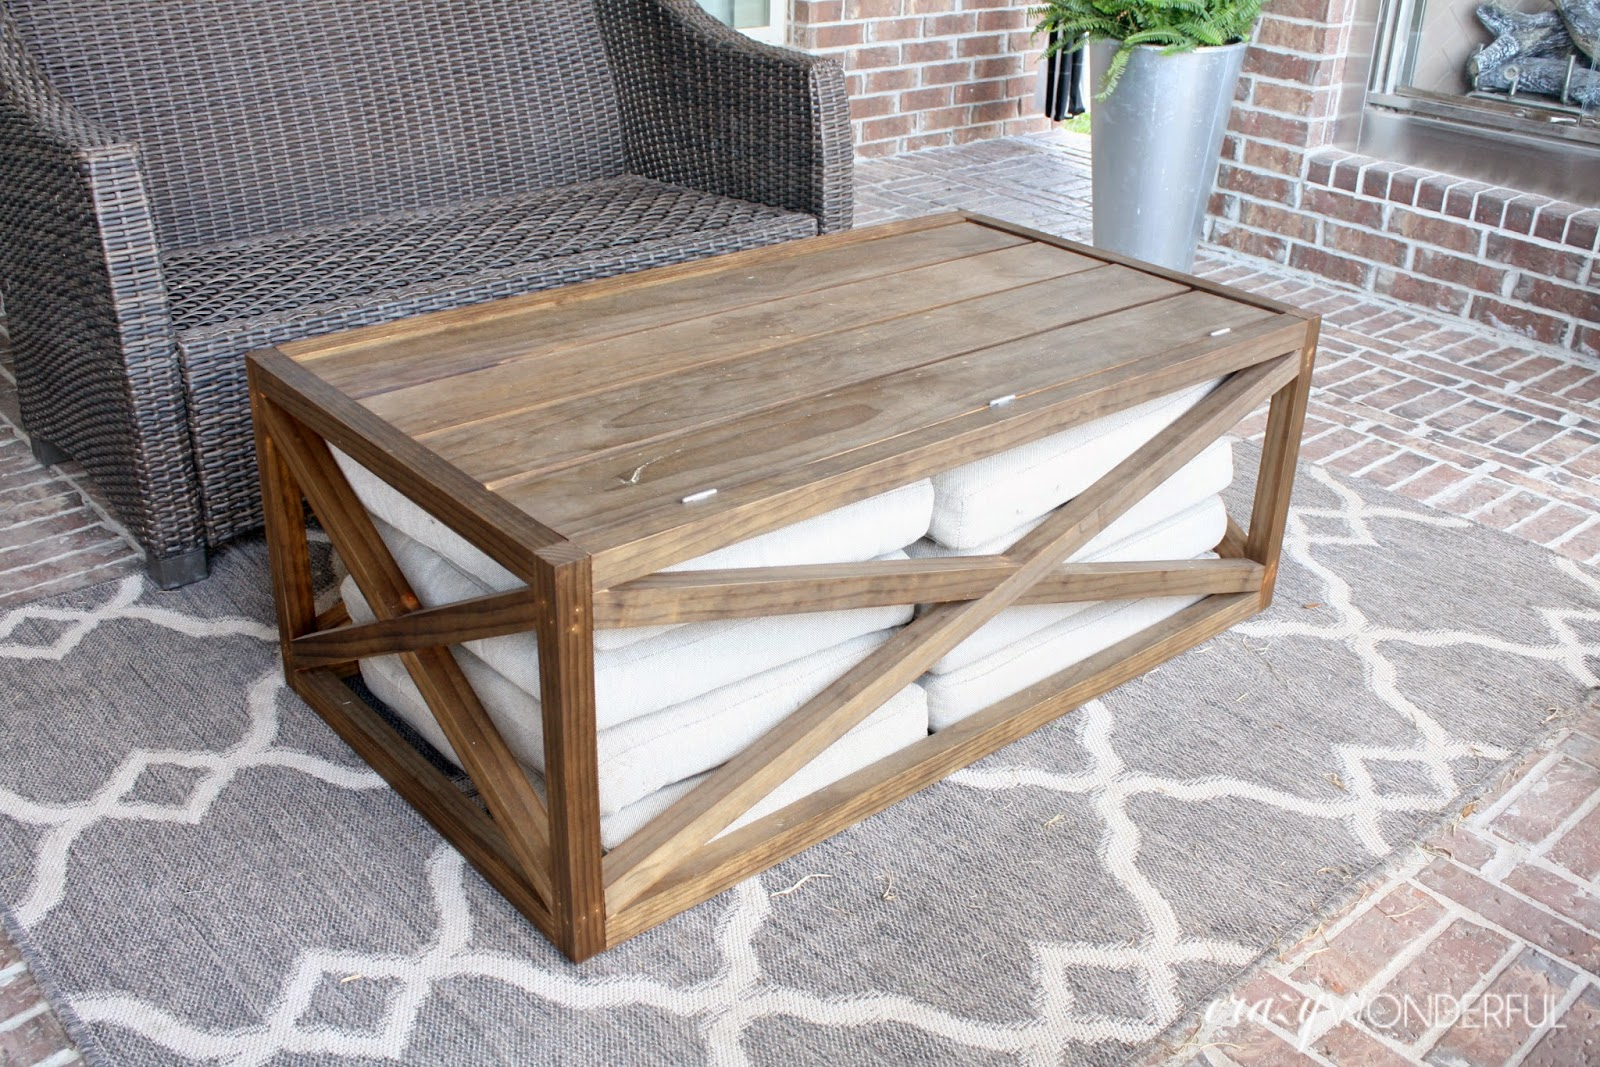 Diy outdoor coffee table with storage crazy wonderful diy outdoor coffee table with storage geotapseo Image collections